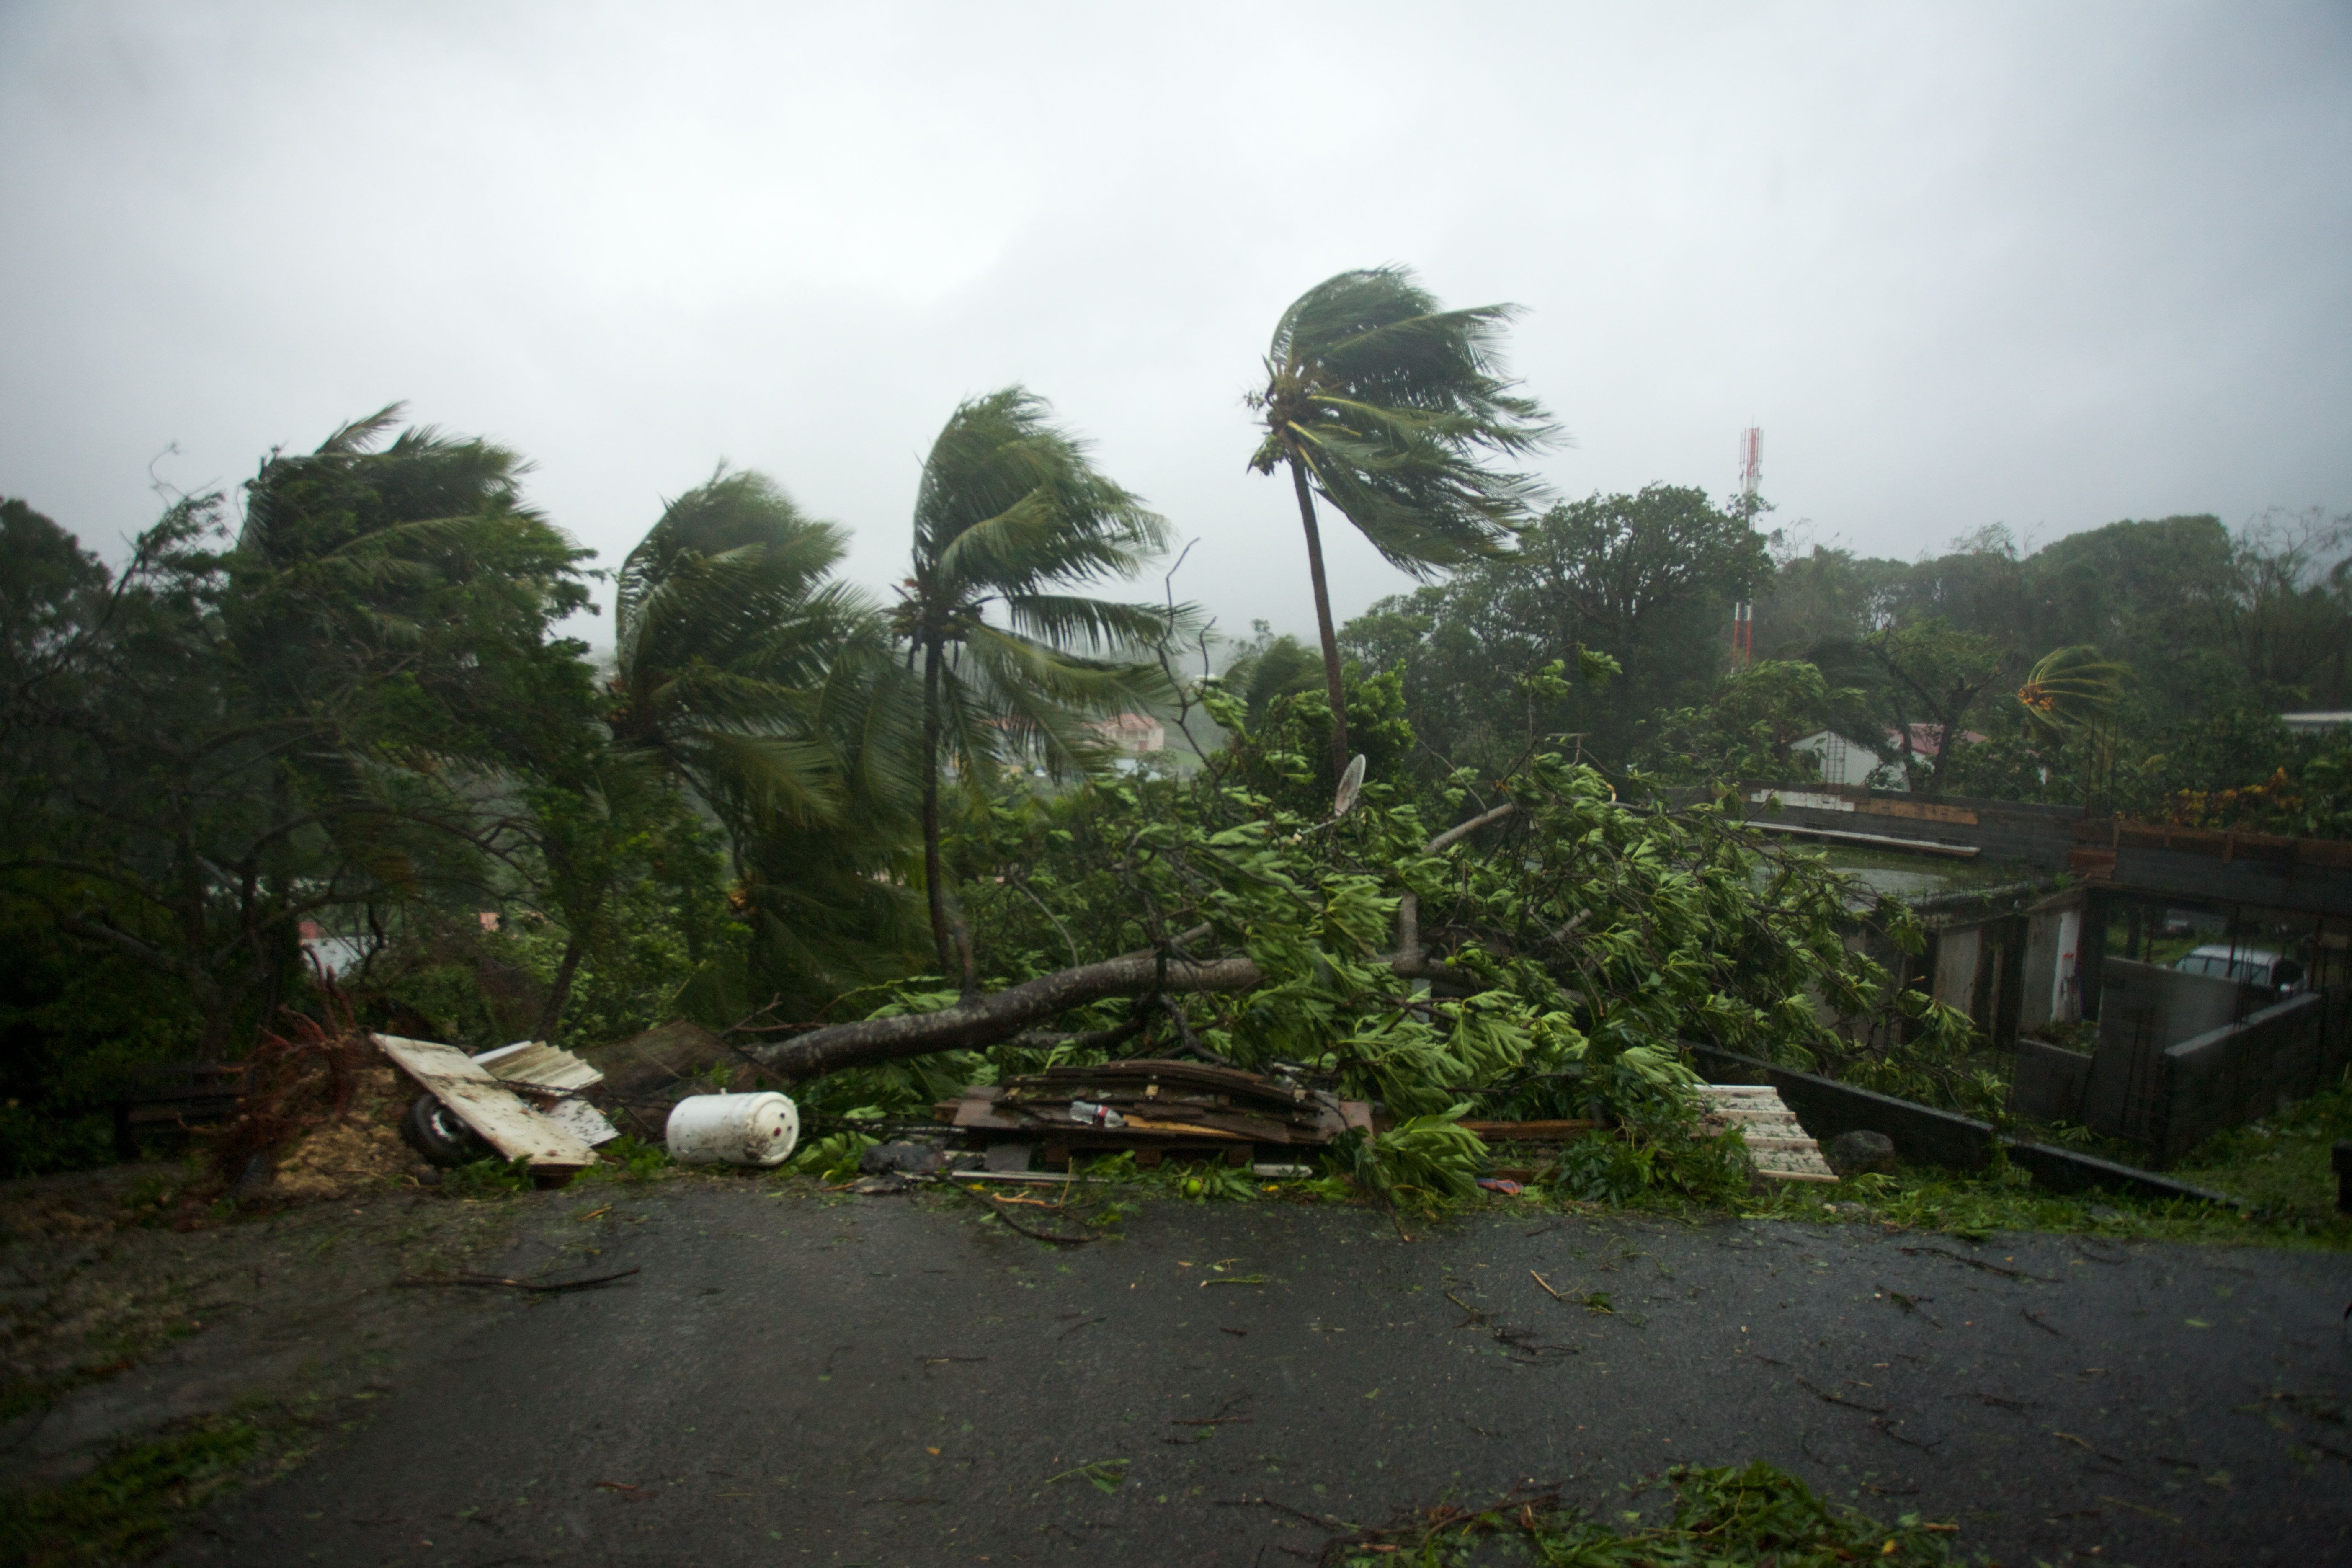 Martinique Escapes Brunt of Hurricane Maria, Guadeloupe Takes Lashing